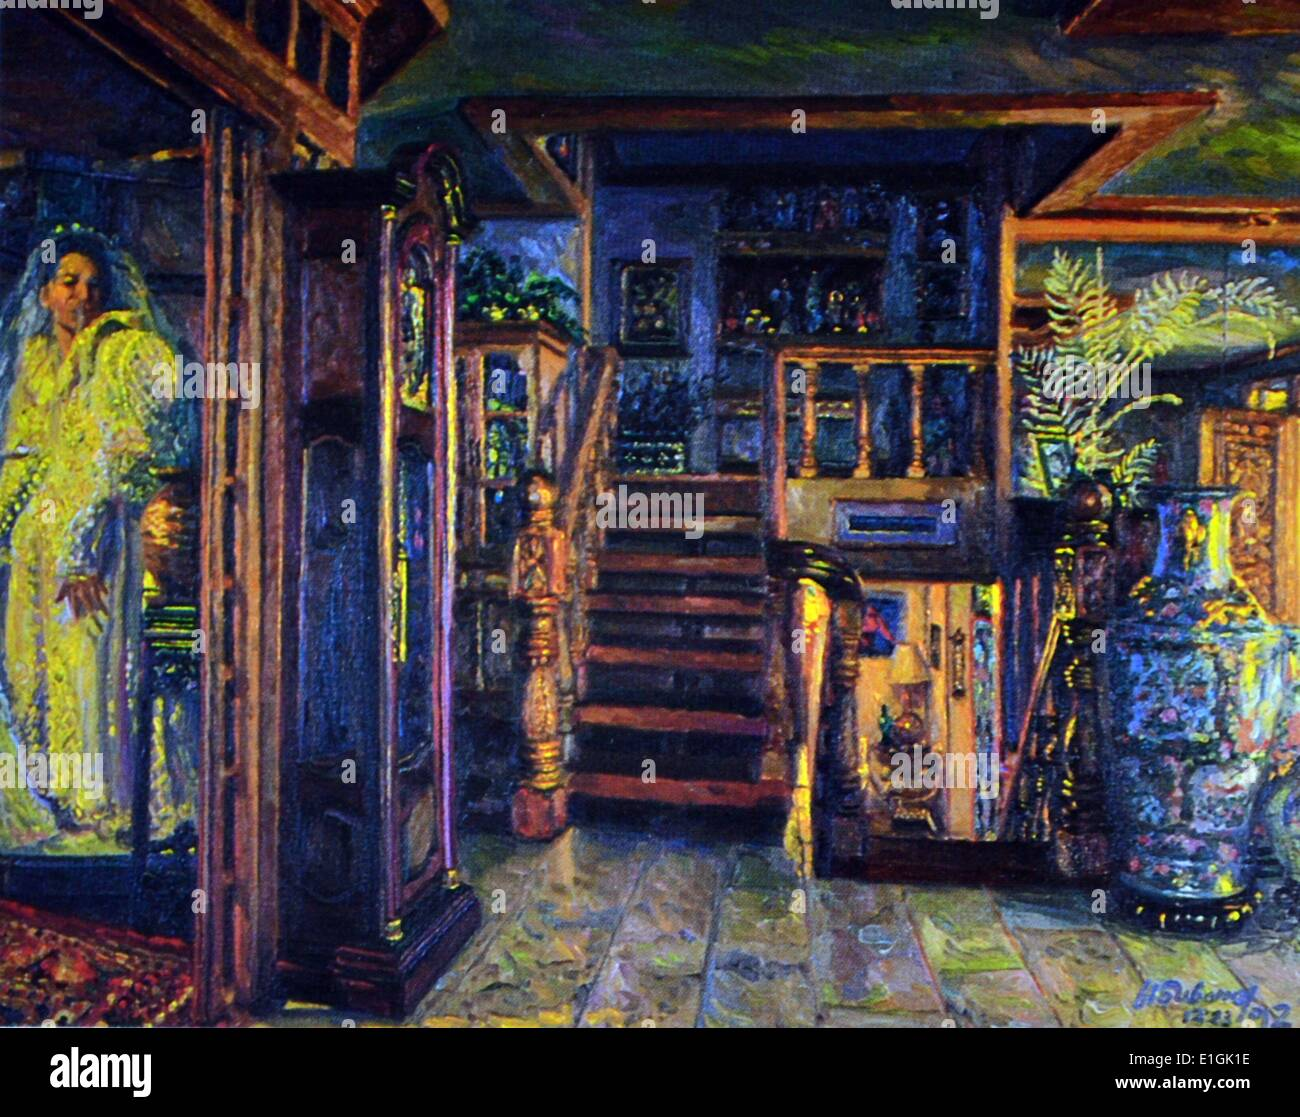 Gamaliel Subang, Interior 1992. Oil on canvas - Stock Image